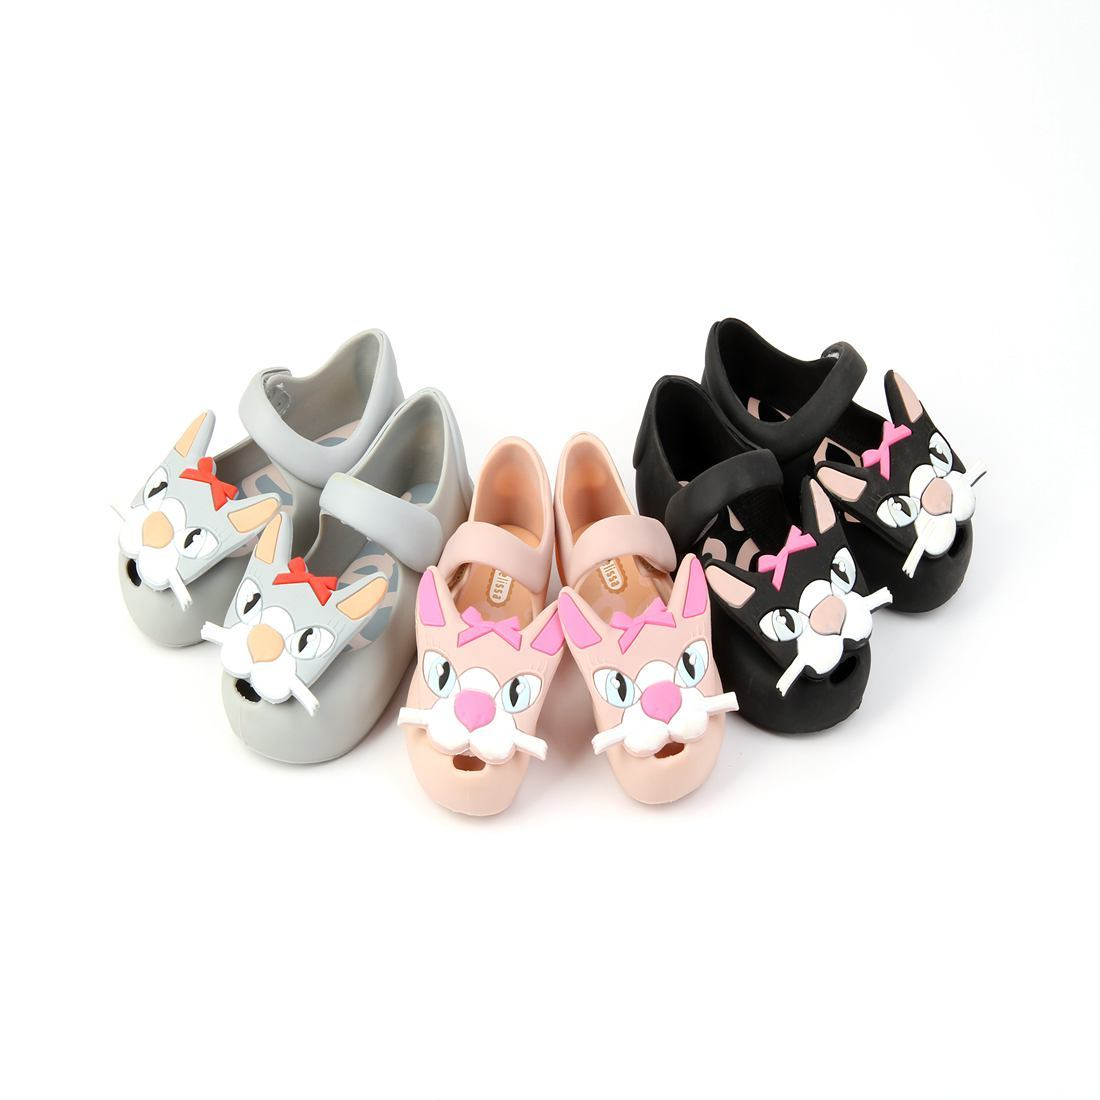 2018Mini Melissa New Summer Cat Sandals Big Face with Bow Classic Girls Low-Top Shoes Nonslip Kids Shoe Soft Leather PVC Sandal